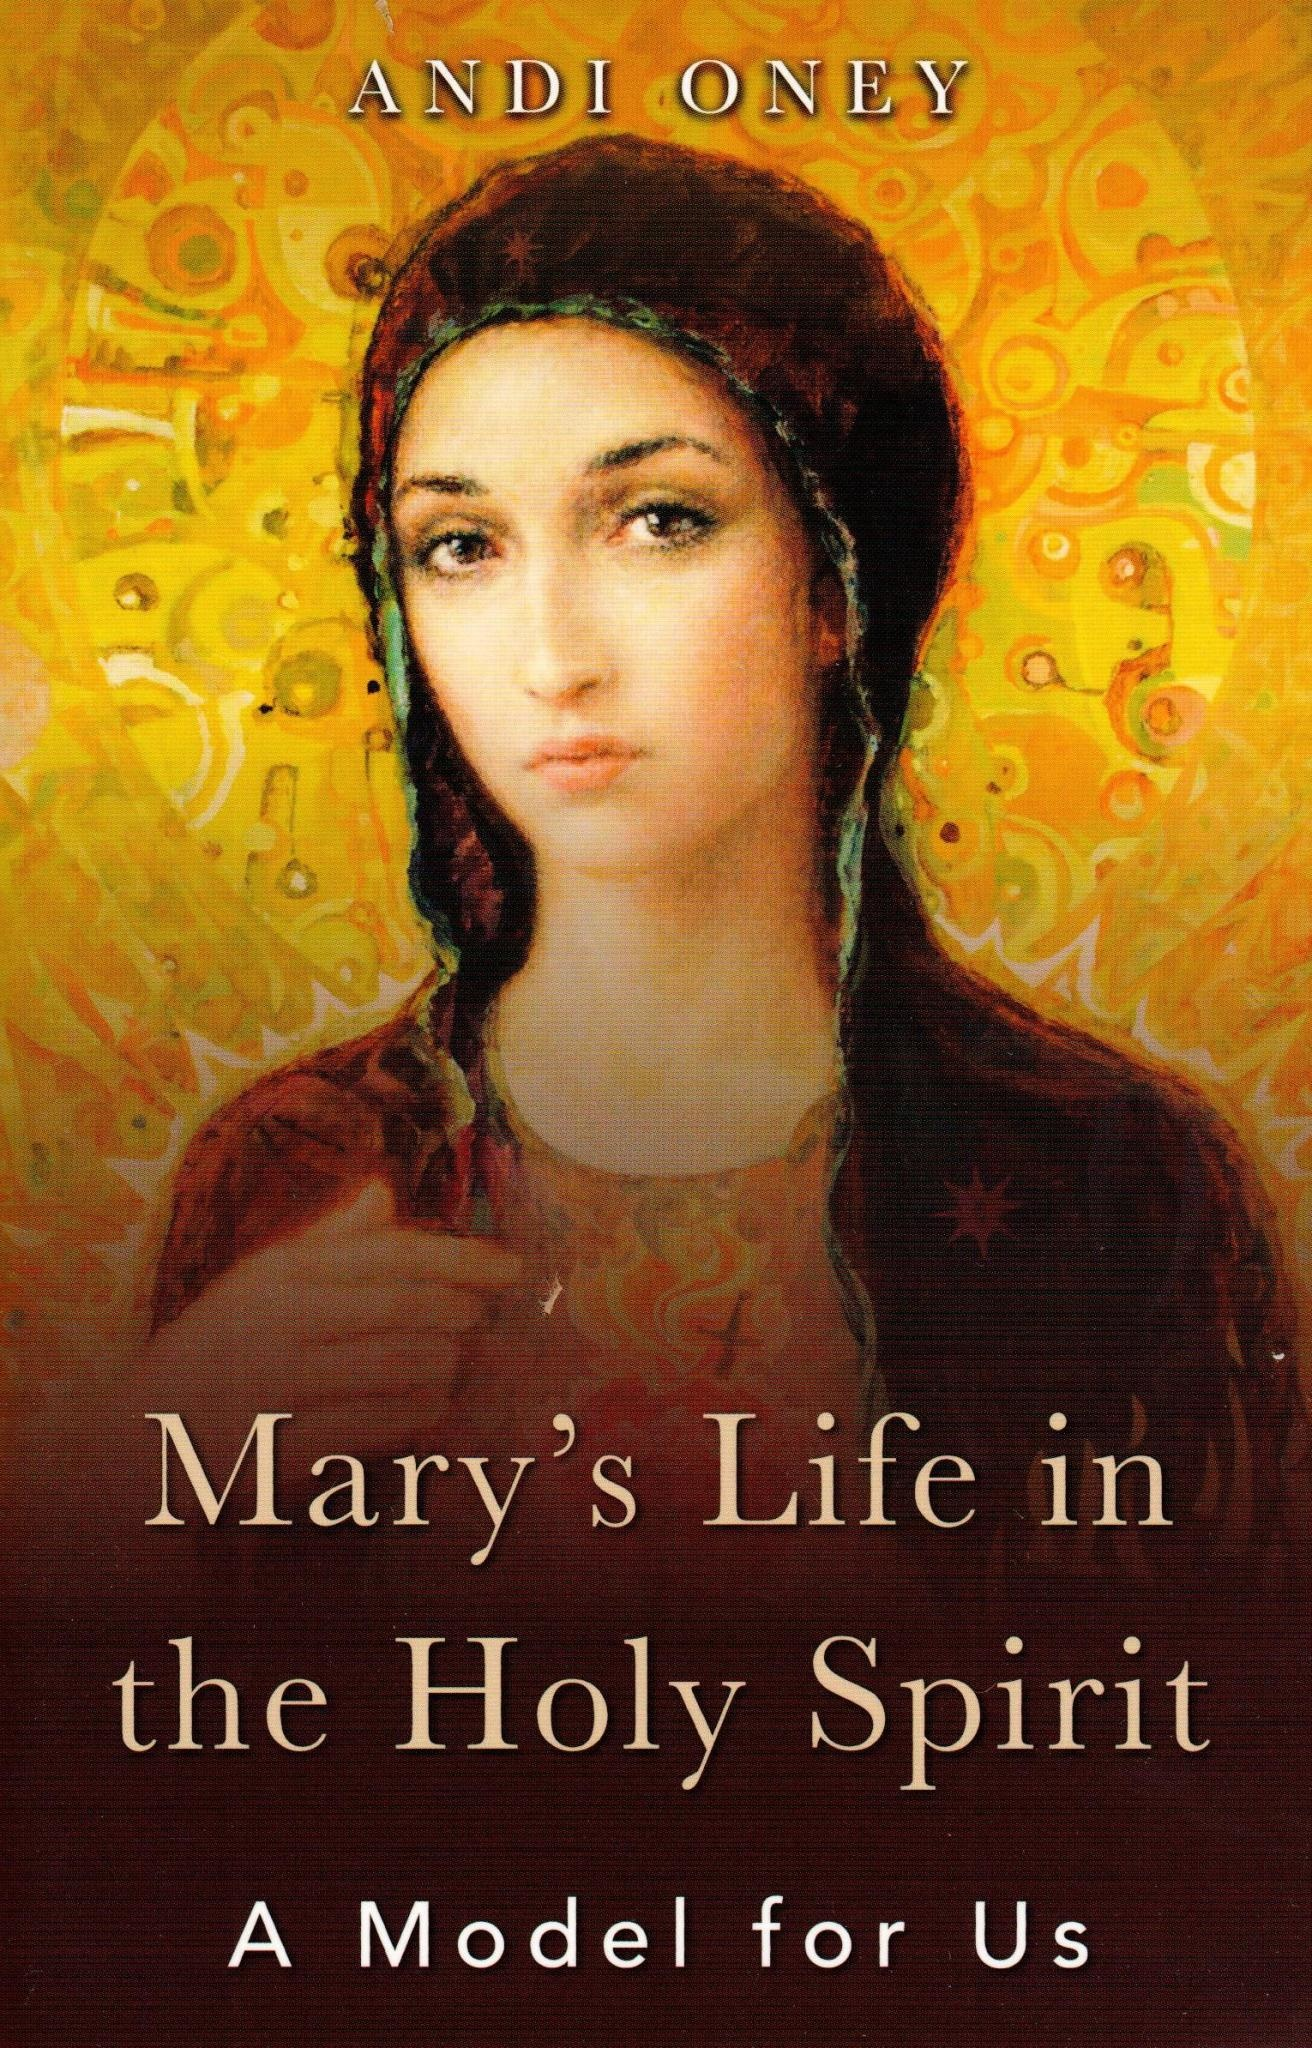 Mary's Life in the Holy Spirit: A Model for Us